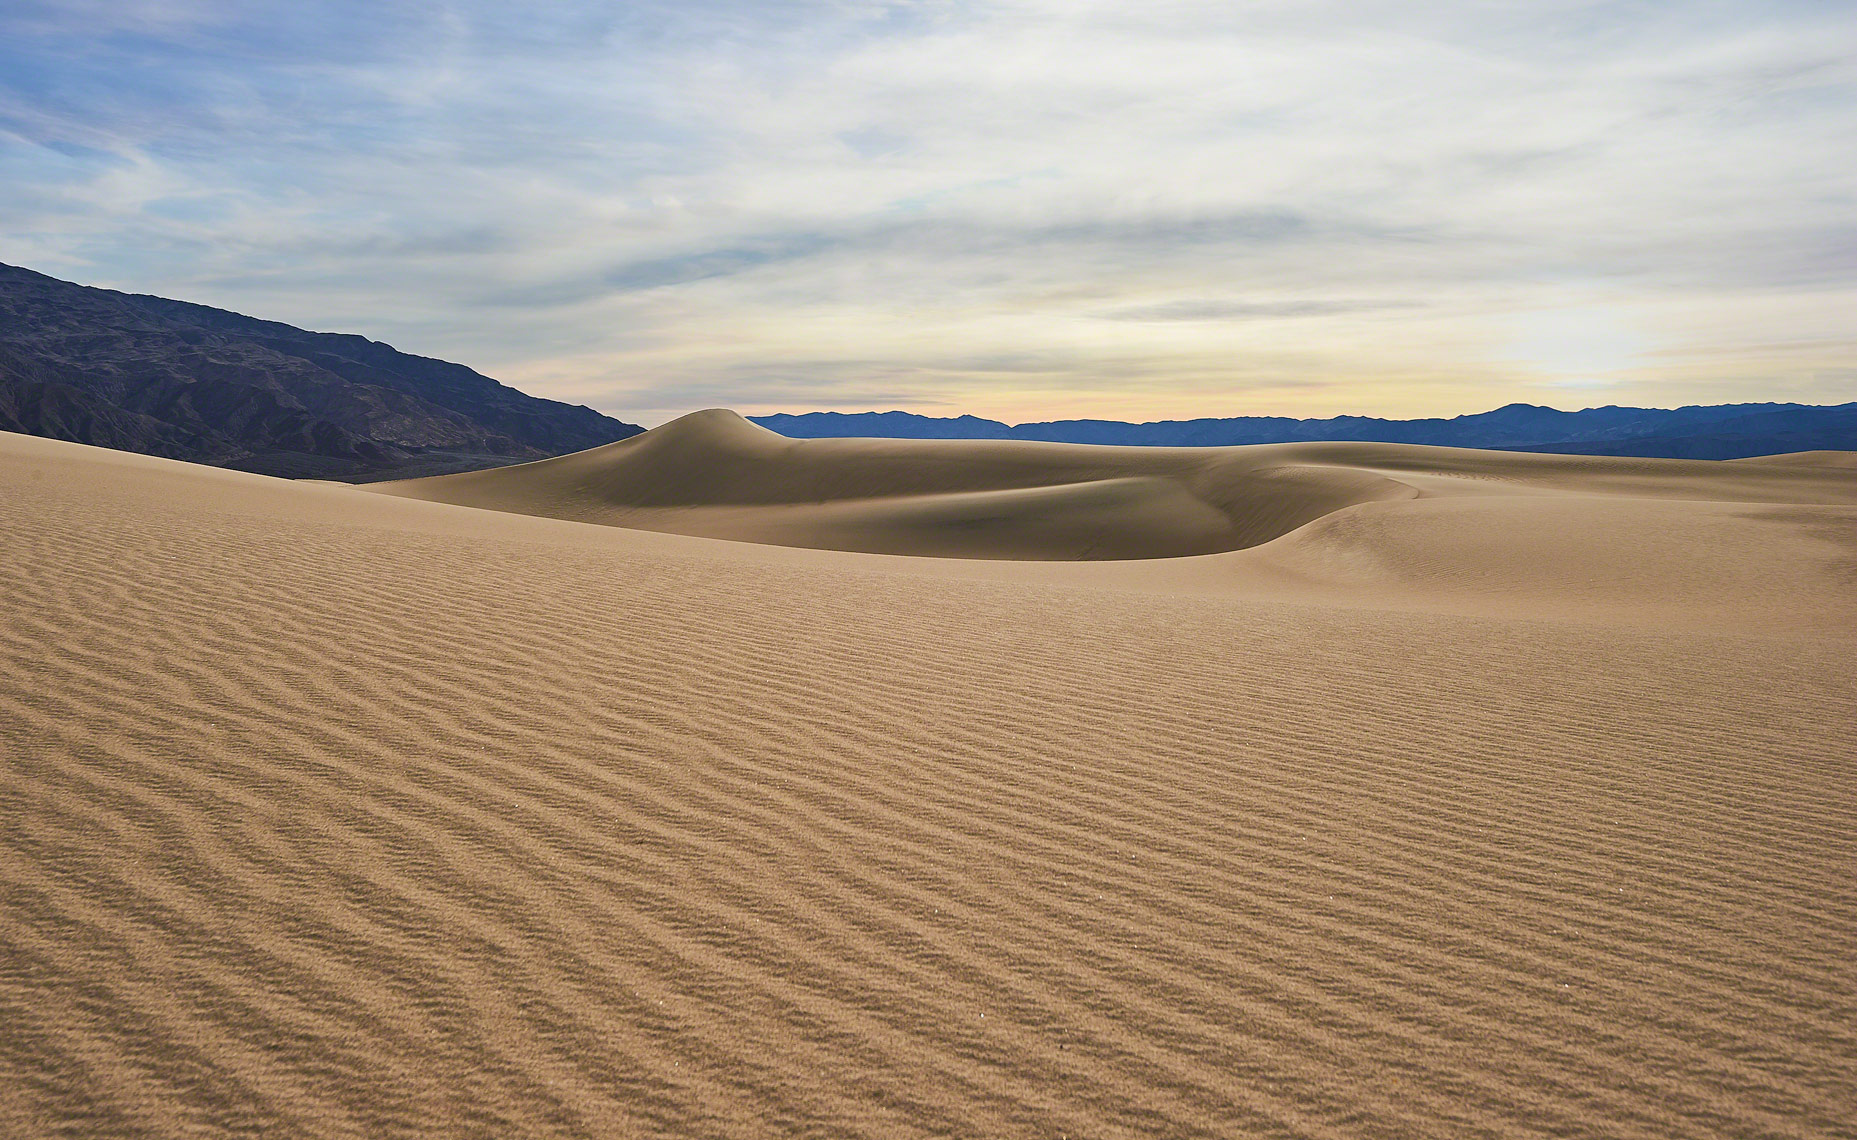 The Death Valley Dunes